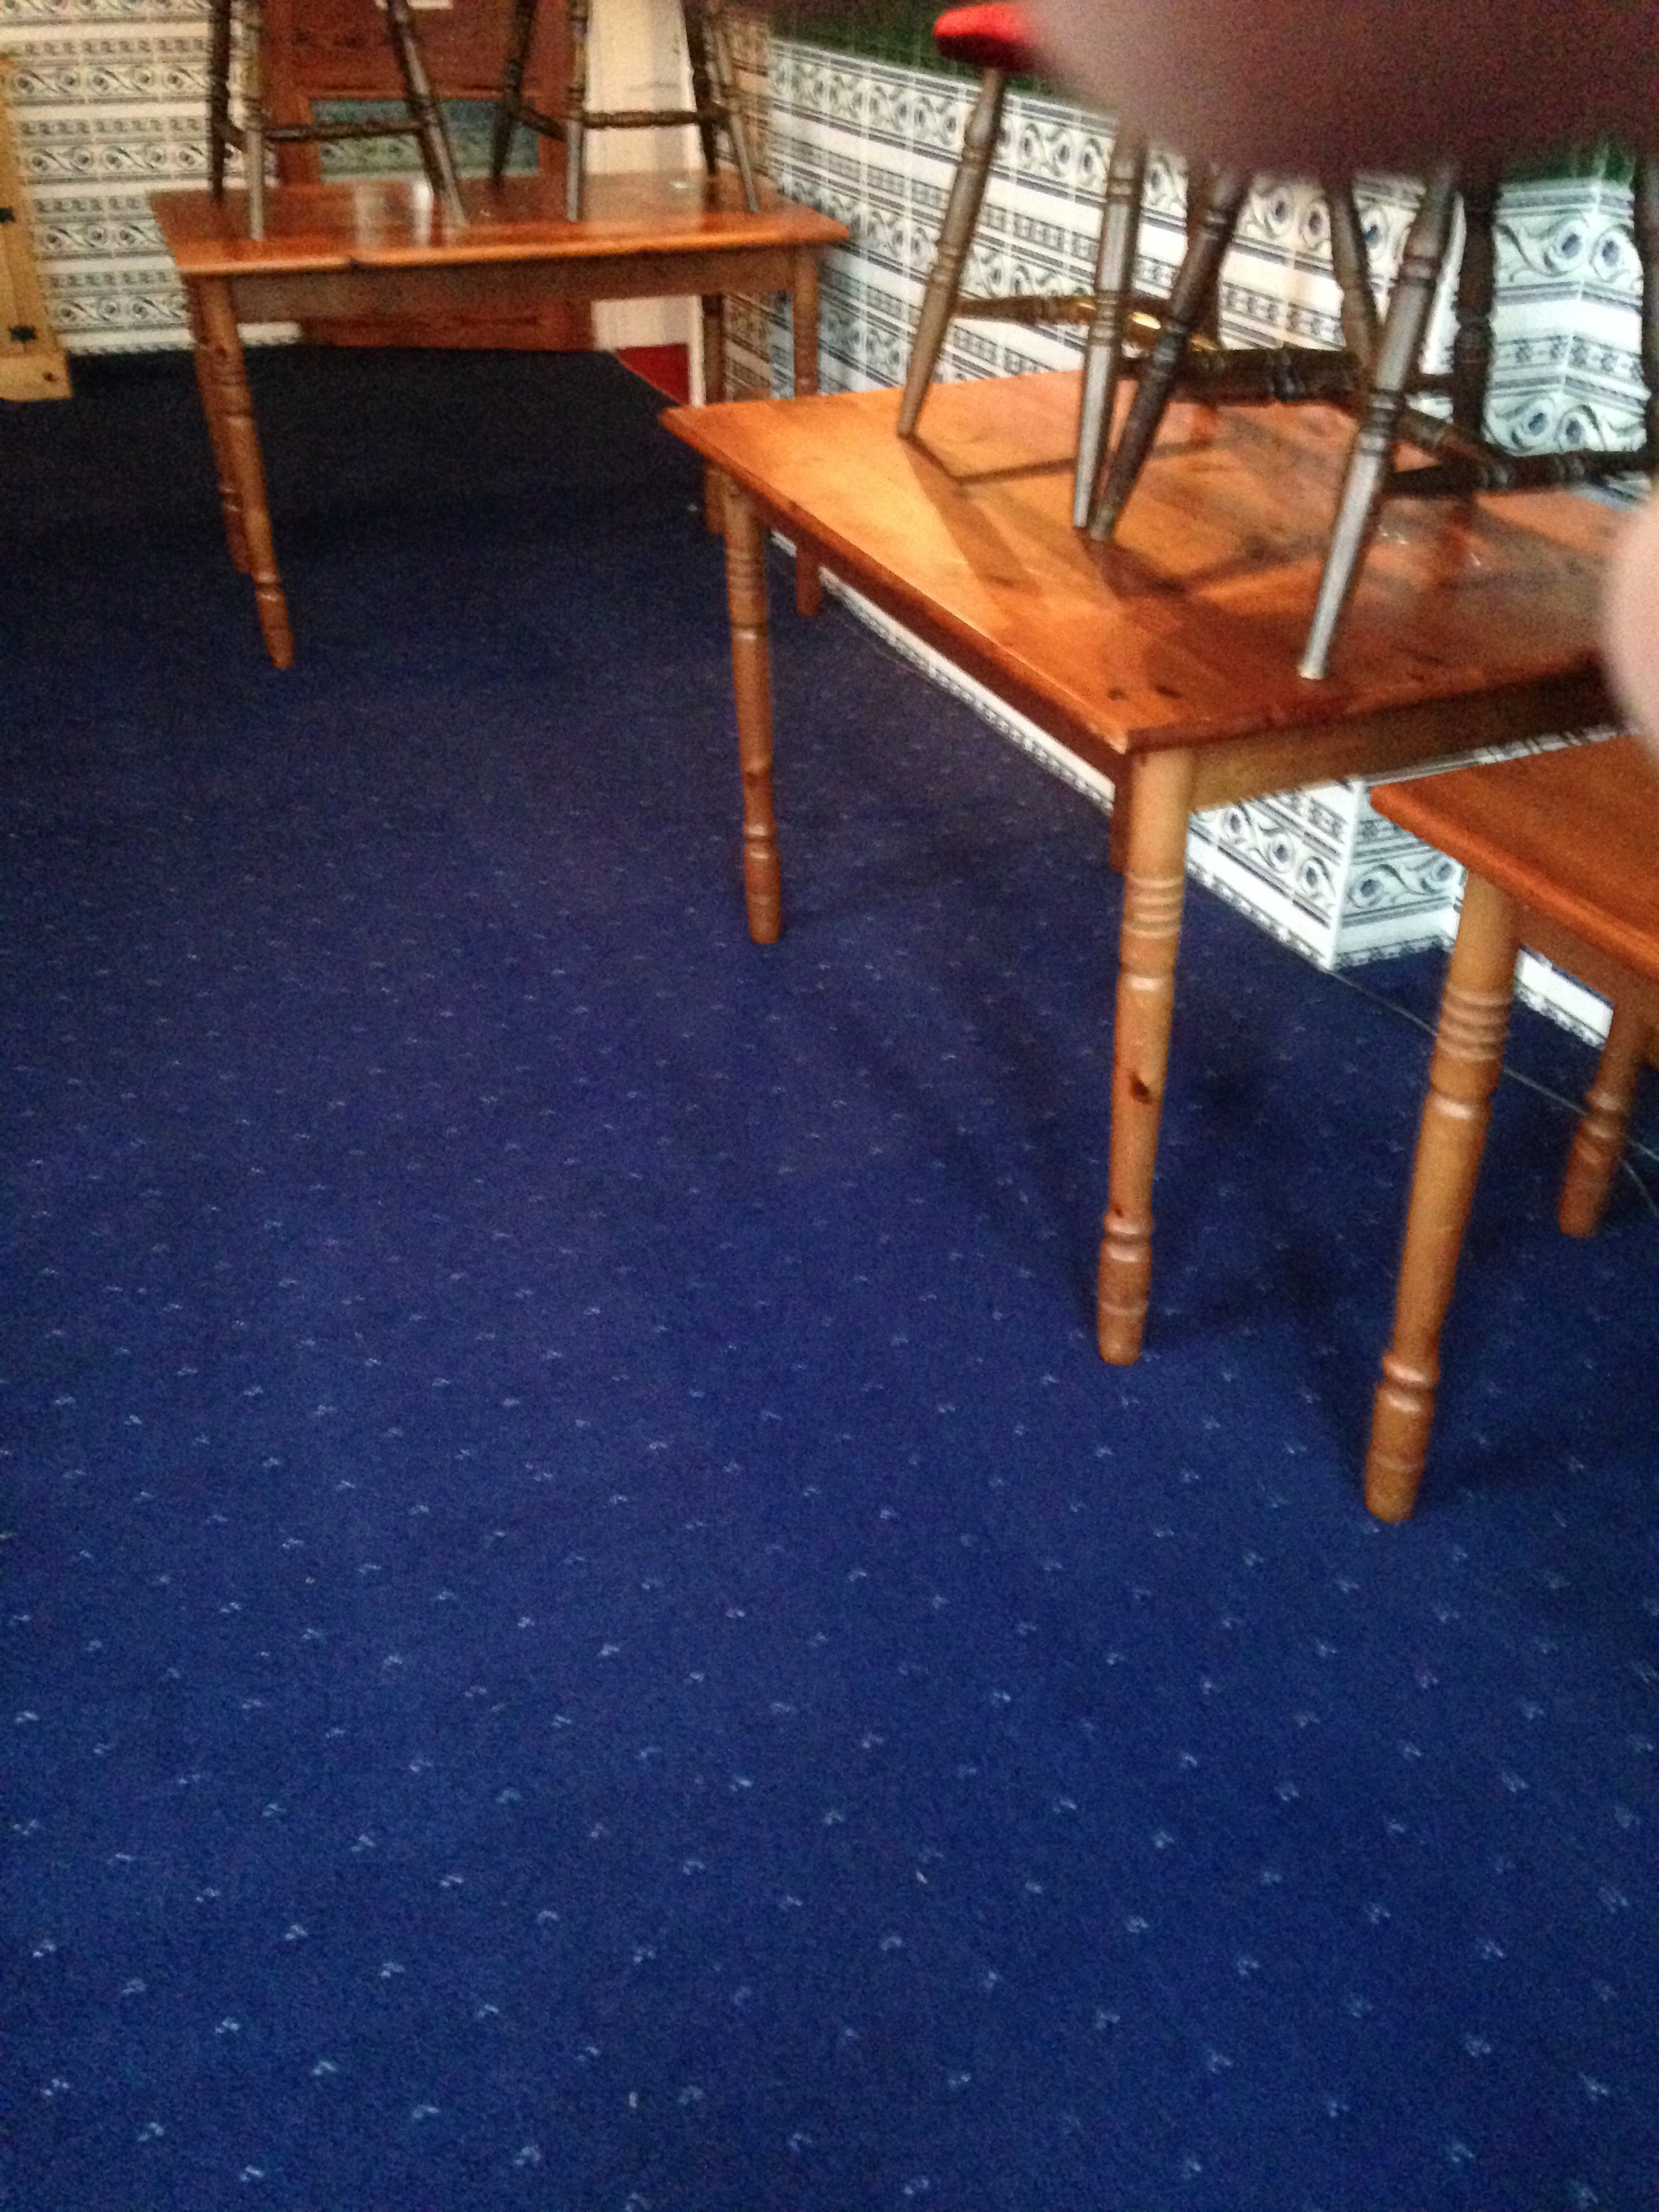 carpet cleaned by the experts